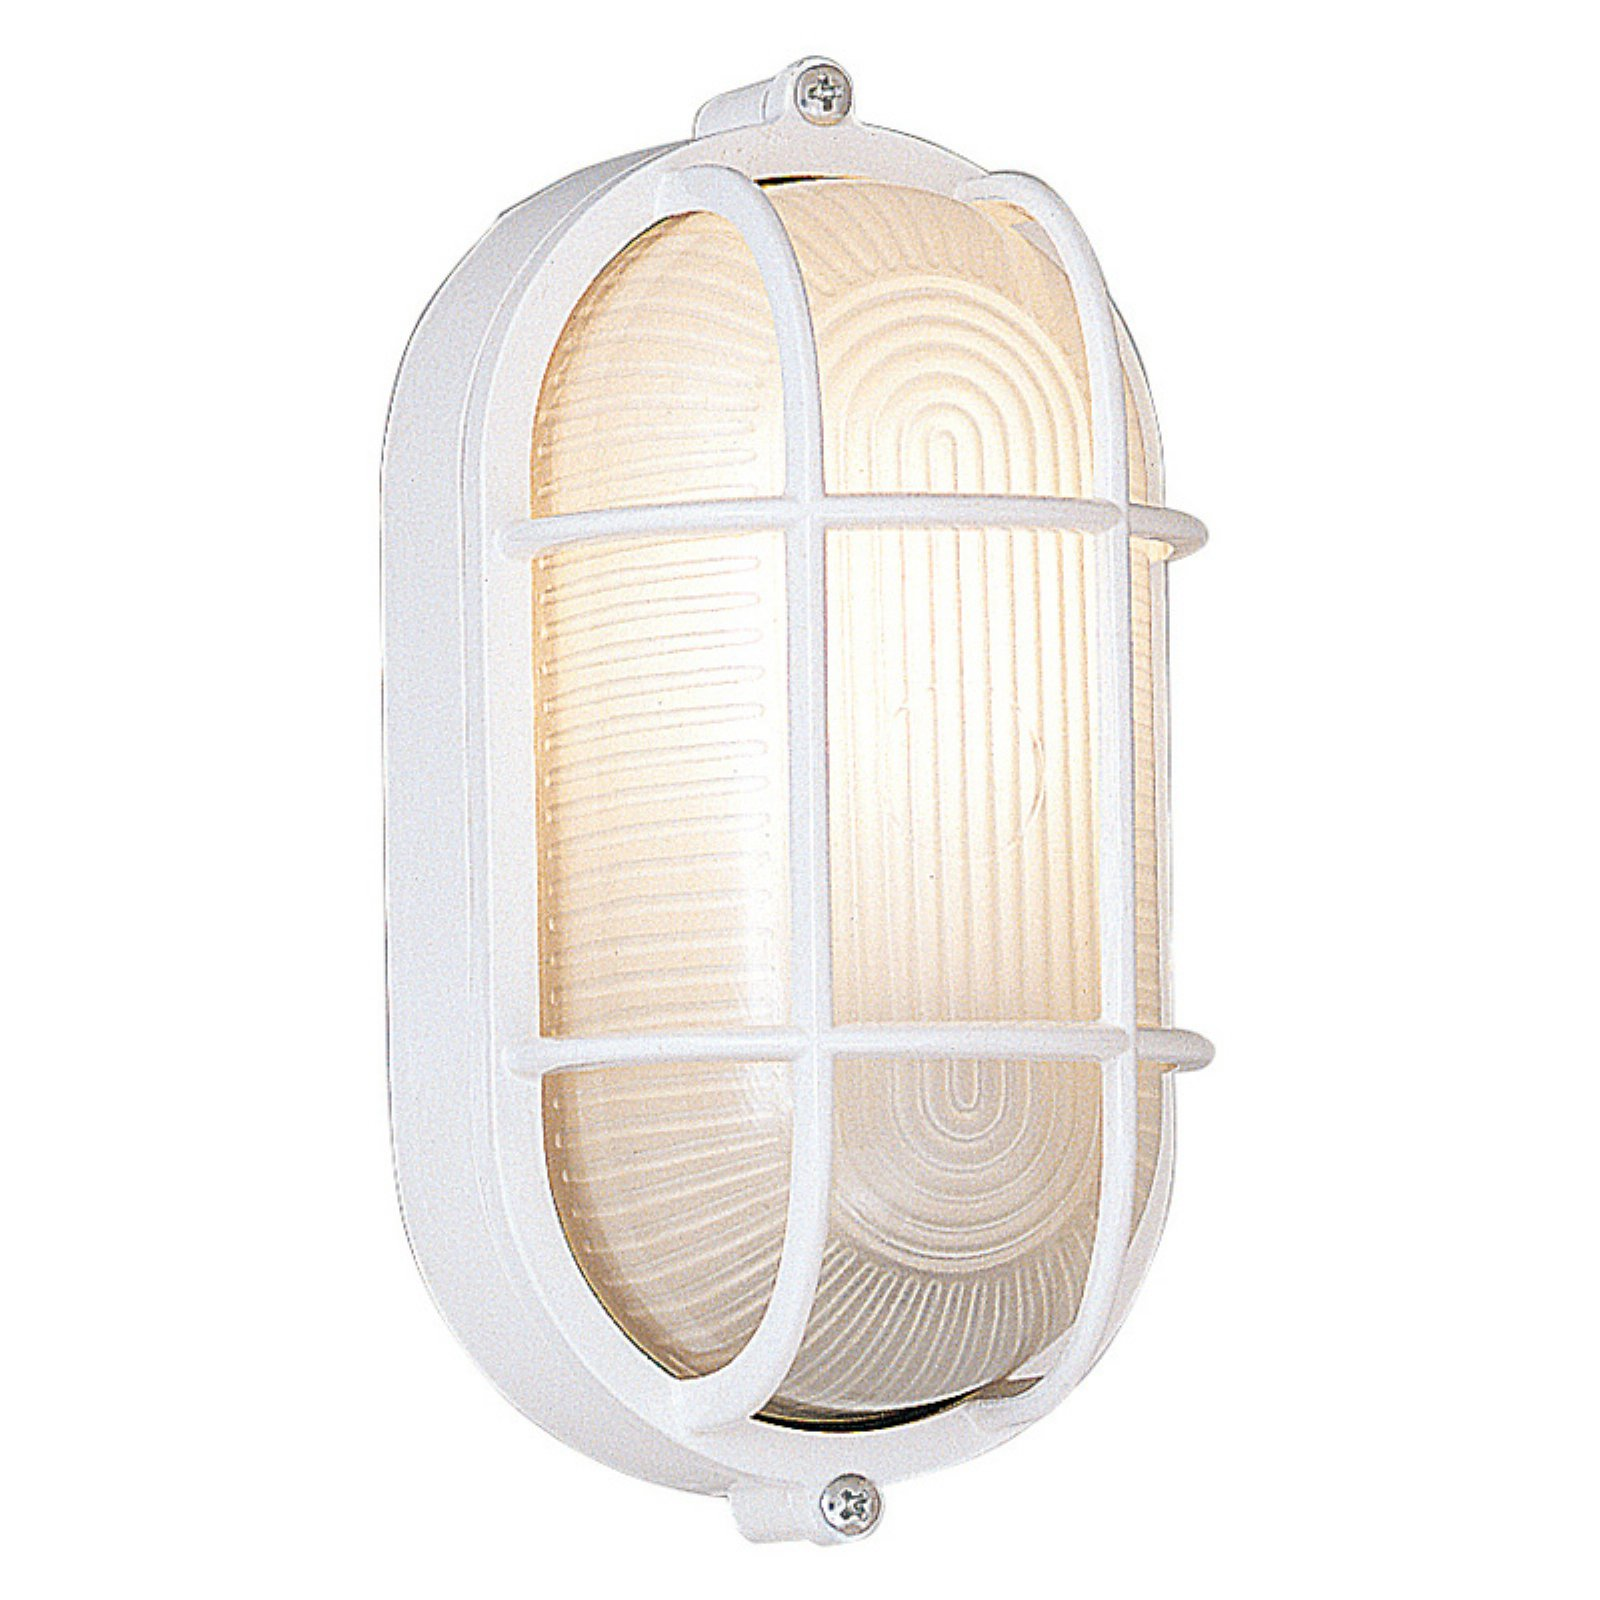 Designers Fountain Outdoor 2071-WH Oval Bulkhead with Guard by Designer's Fountain